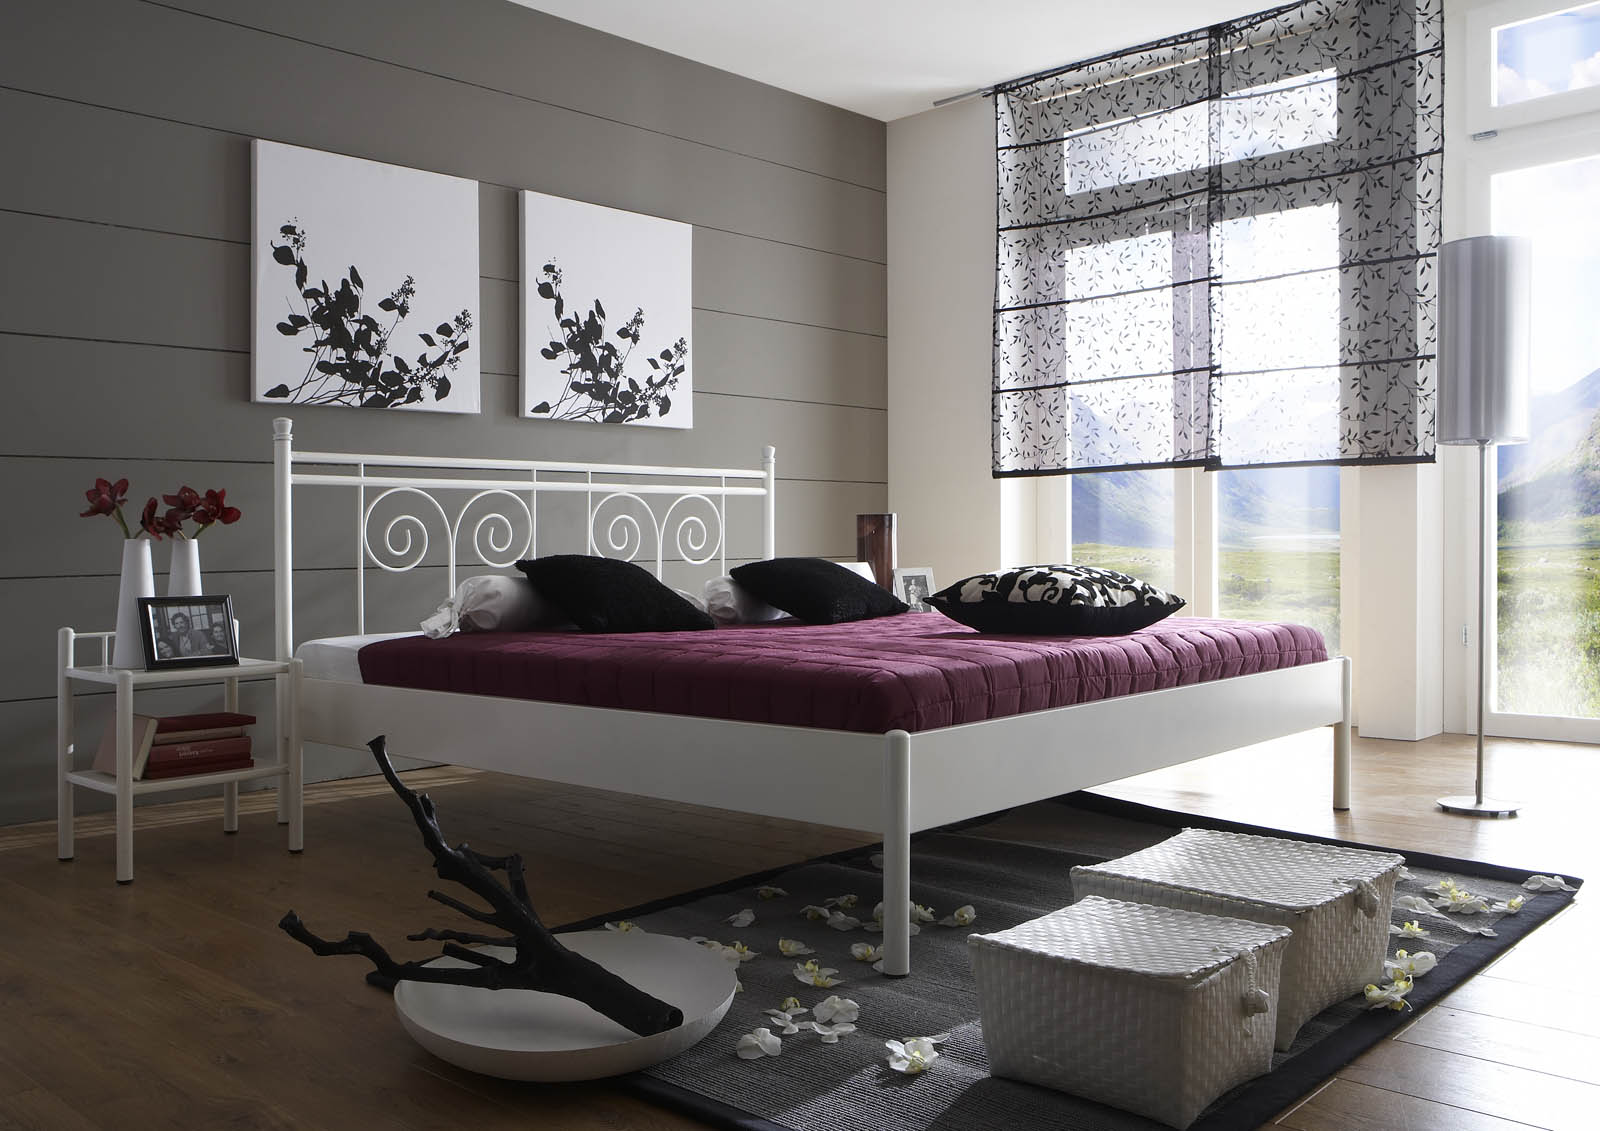 sam metallbett wei 140 x 200 cm kos g nstig. Black Bedroom Furniture Sets. Home Design Ideas